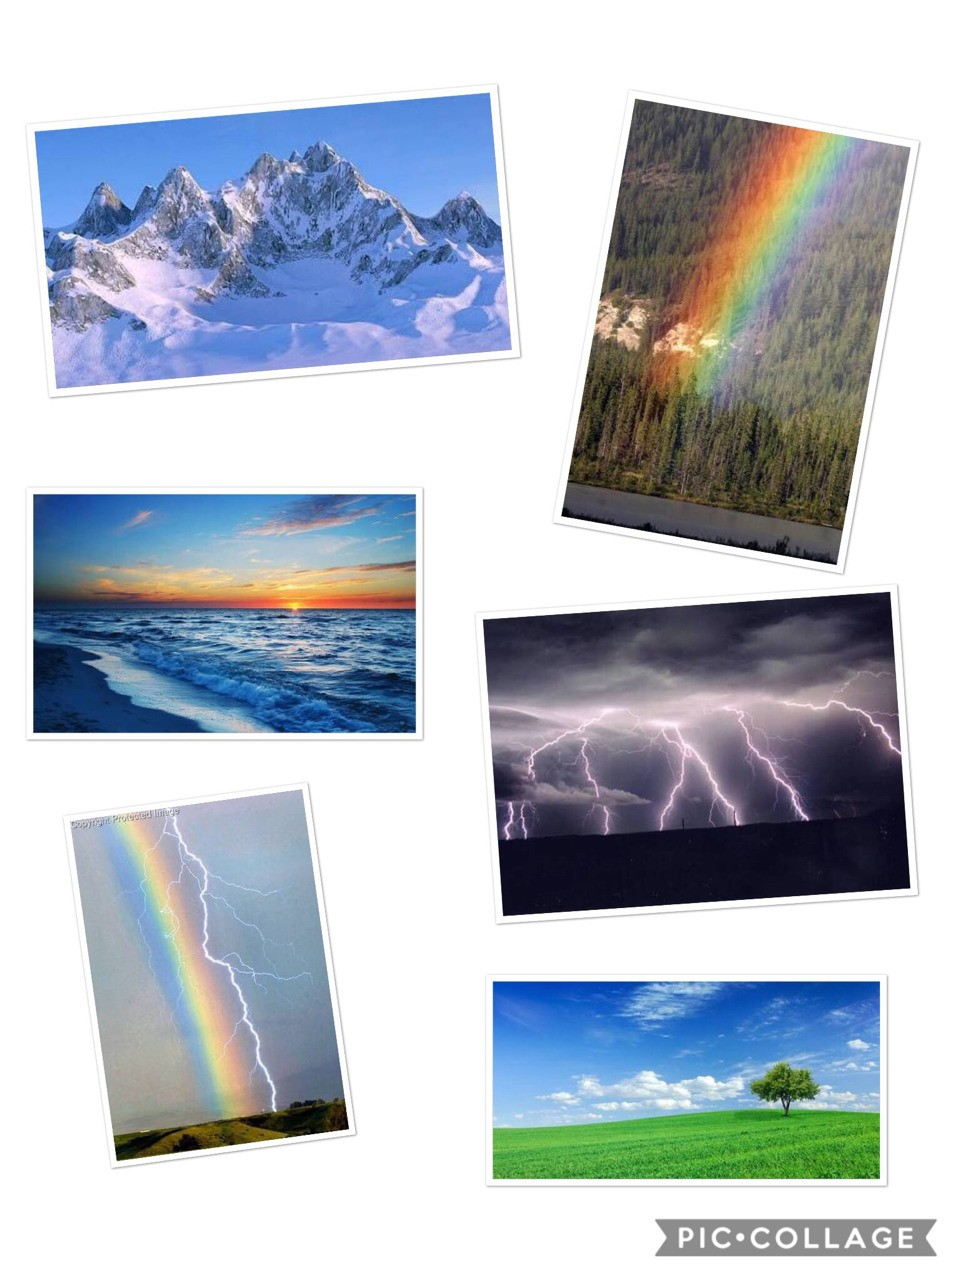 Task 3: what is God like? God is very understanding and kind he also is very loving and caring he loves us and everything he creates. A visual representation of god through nature: I chose these pictures because they show beauty with the mountains it shows gods mighty ness. The rainbow represent Gods beauty and kindness the lighting strikes represents gods power. And the beach represents gods calmness.